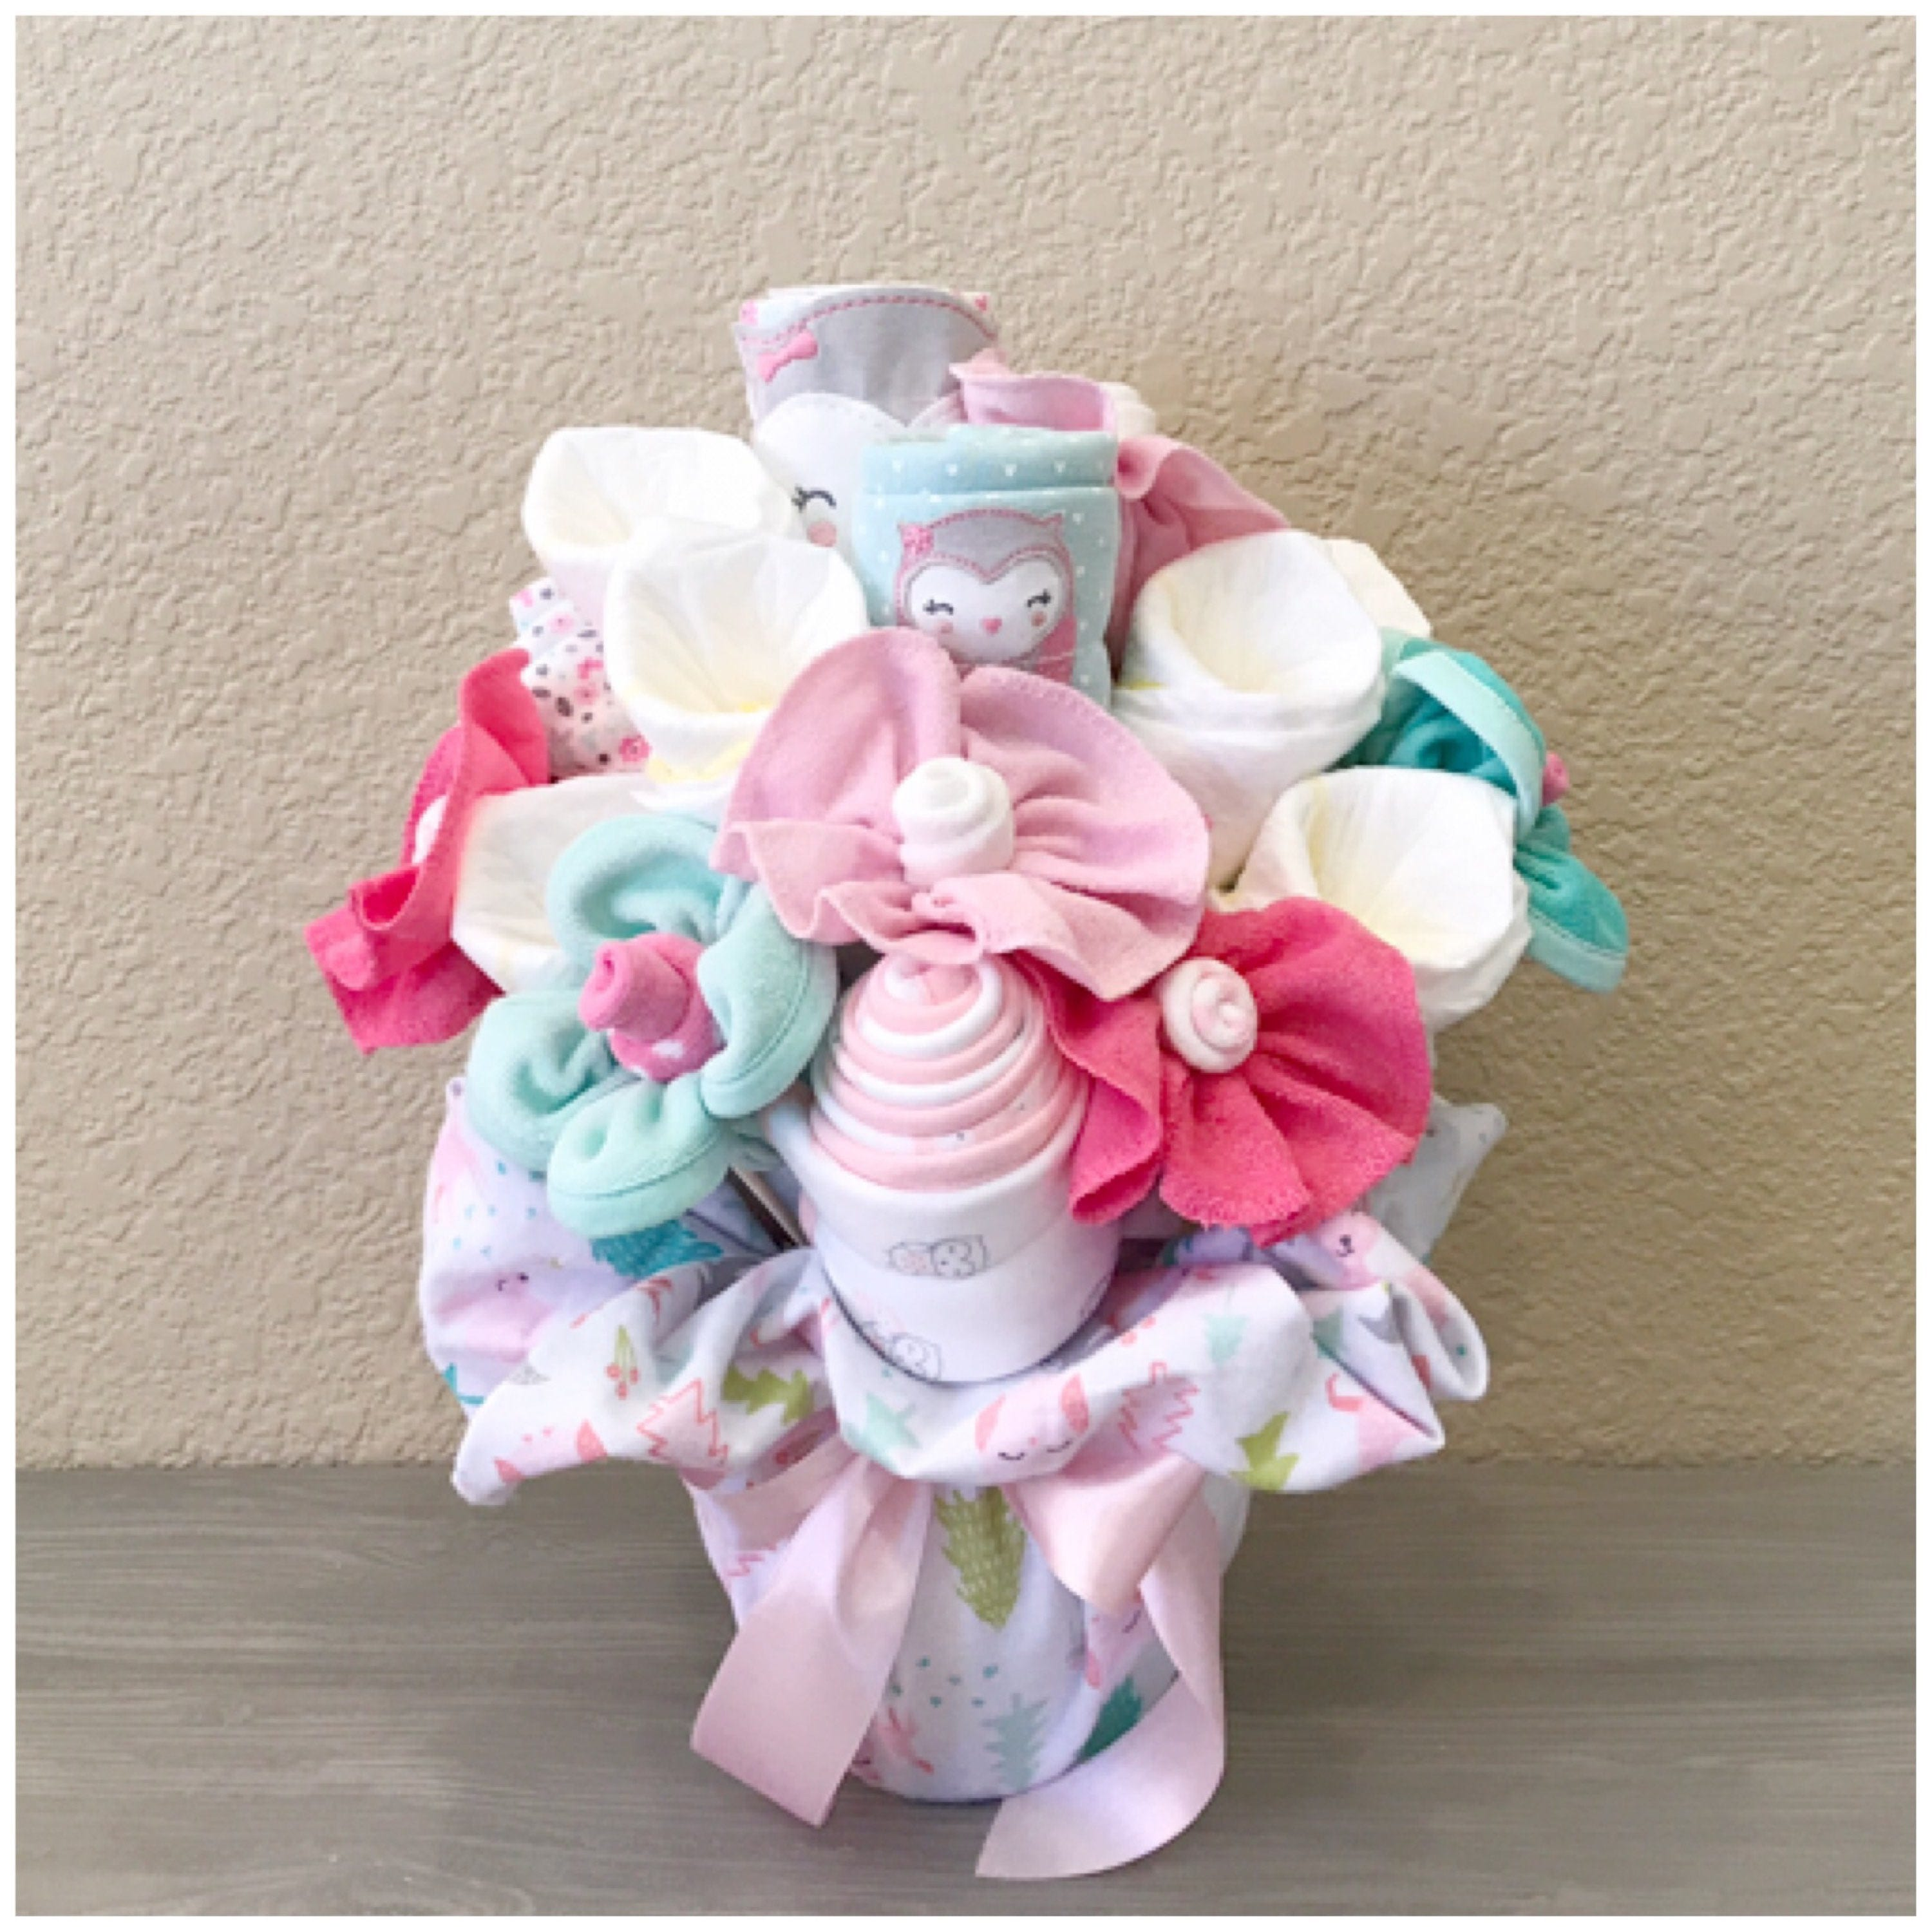 Baby gift for girl pink and teal owl themed baby clothing baby gift for girl pink and teal owl themed baby clothing bouquet floral nursery decor owl baby shower centerpiecegift negle Image collections